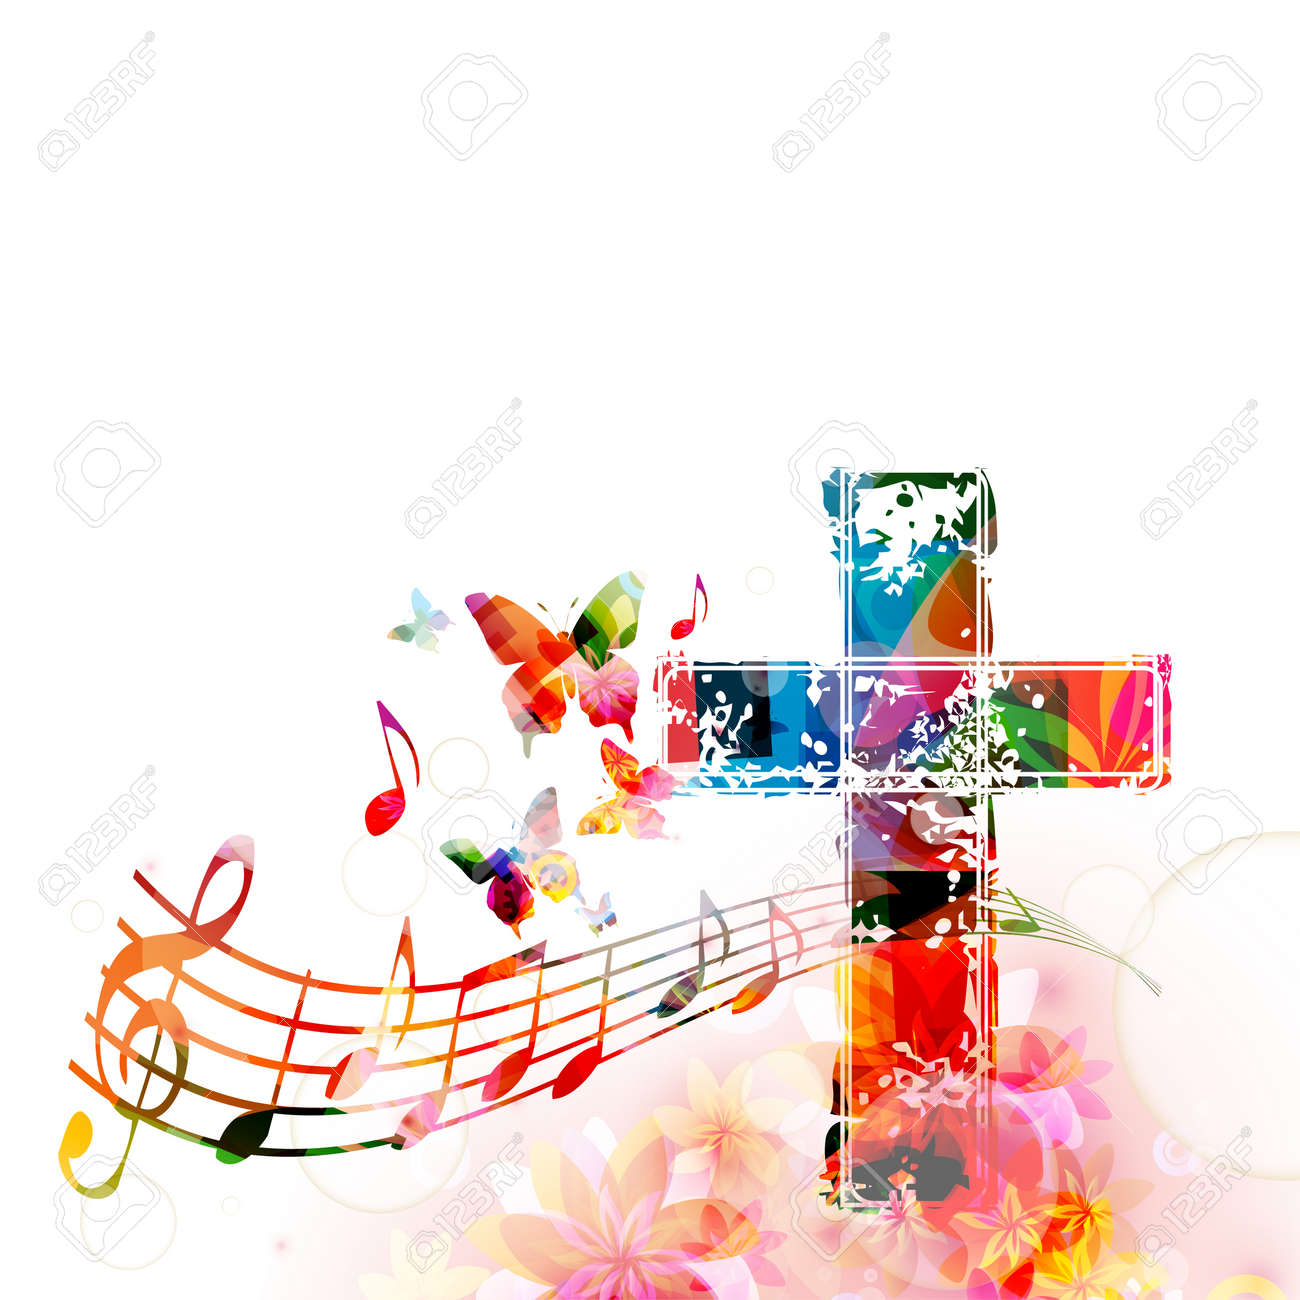 Colorful christian cross with music staff and notes isolated vector illustration. Religion themed background. Design for gospel church music, concert, choir singing, Christianity, prayer - 70027508